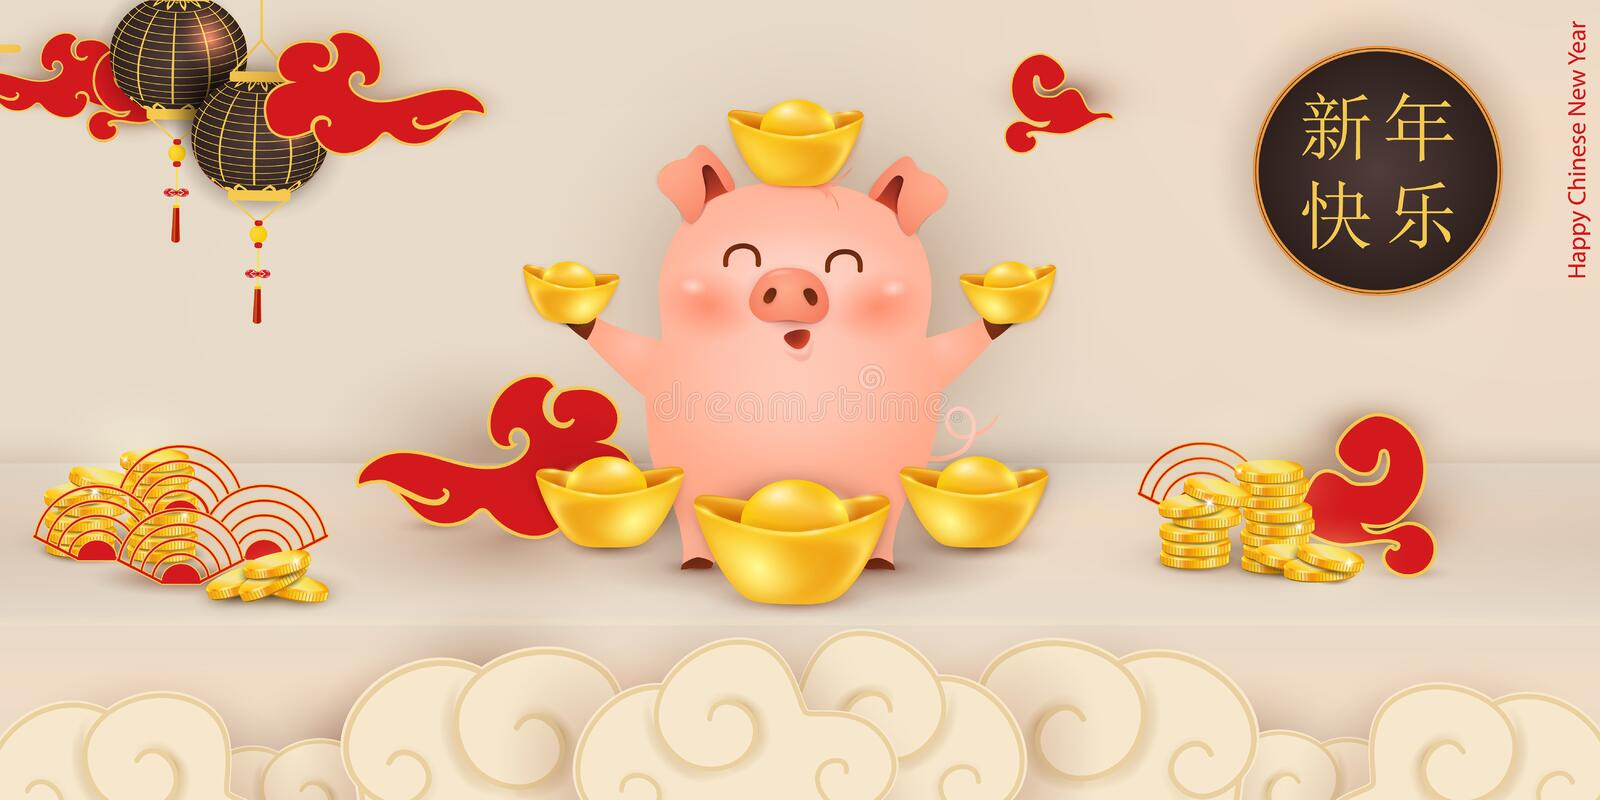 Happy Chinese New year of the pig. Cute cartoon Pig character design with chinese gold ingot for card, flyers vector illustration